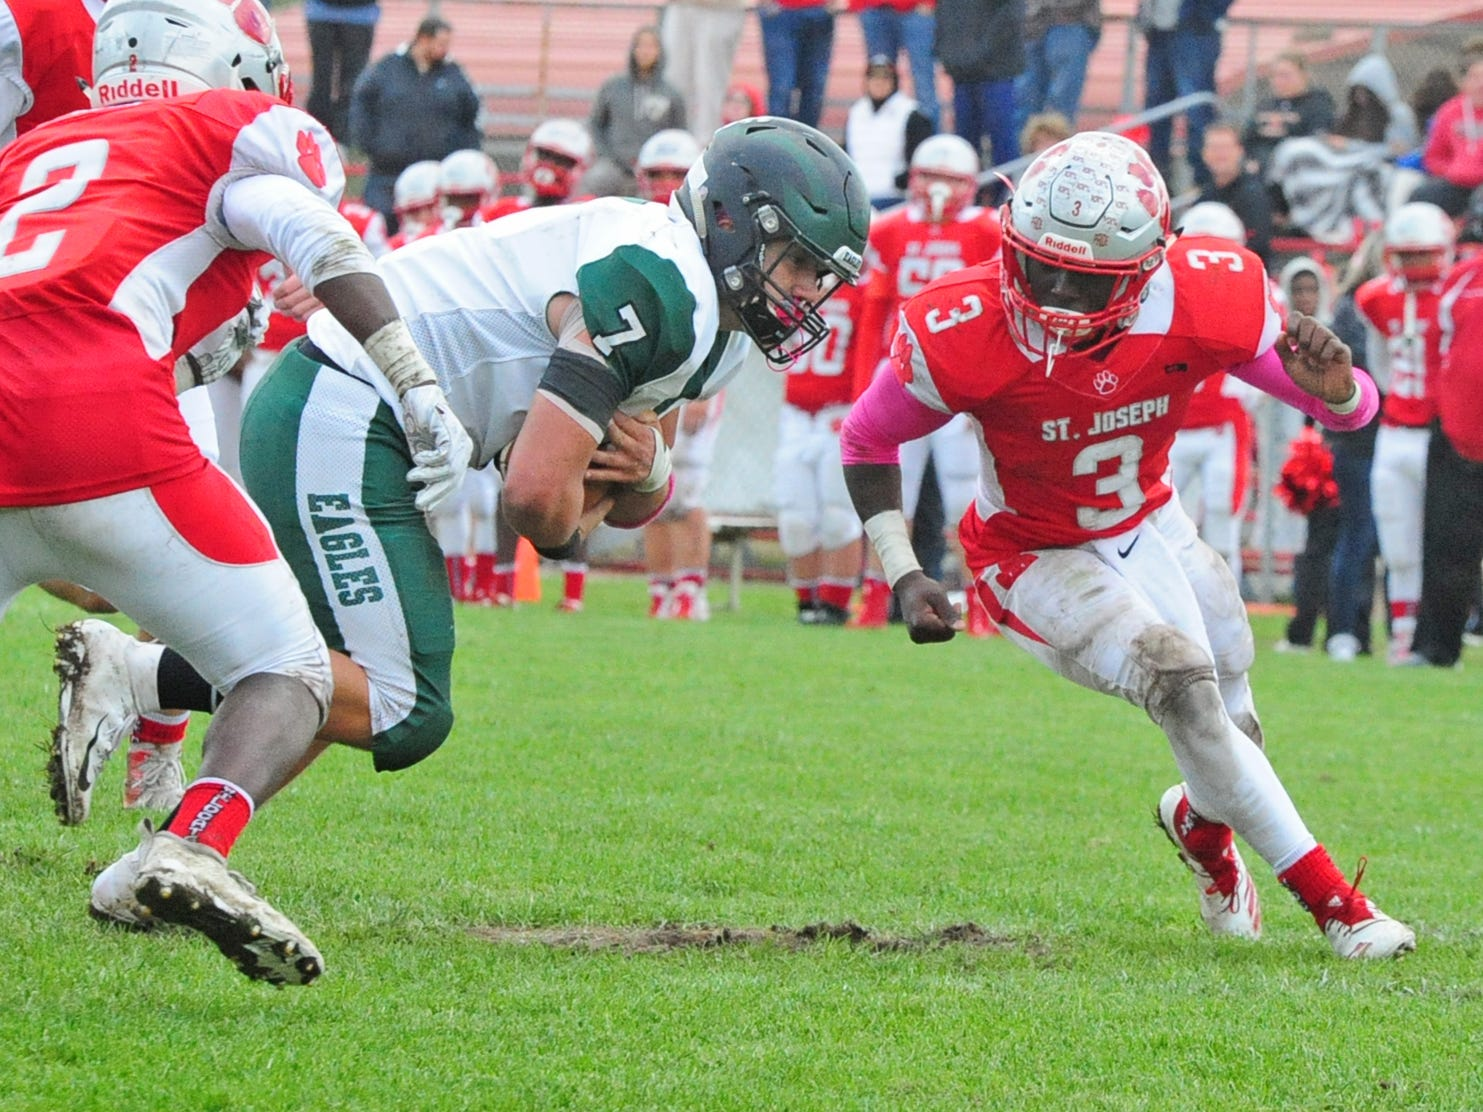 West Deptford's T.J. Hoyt (center) is defended by St. Joseph's Jada Byers (right) during Saturday's football game in Hammonton on October 13, 2018.